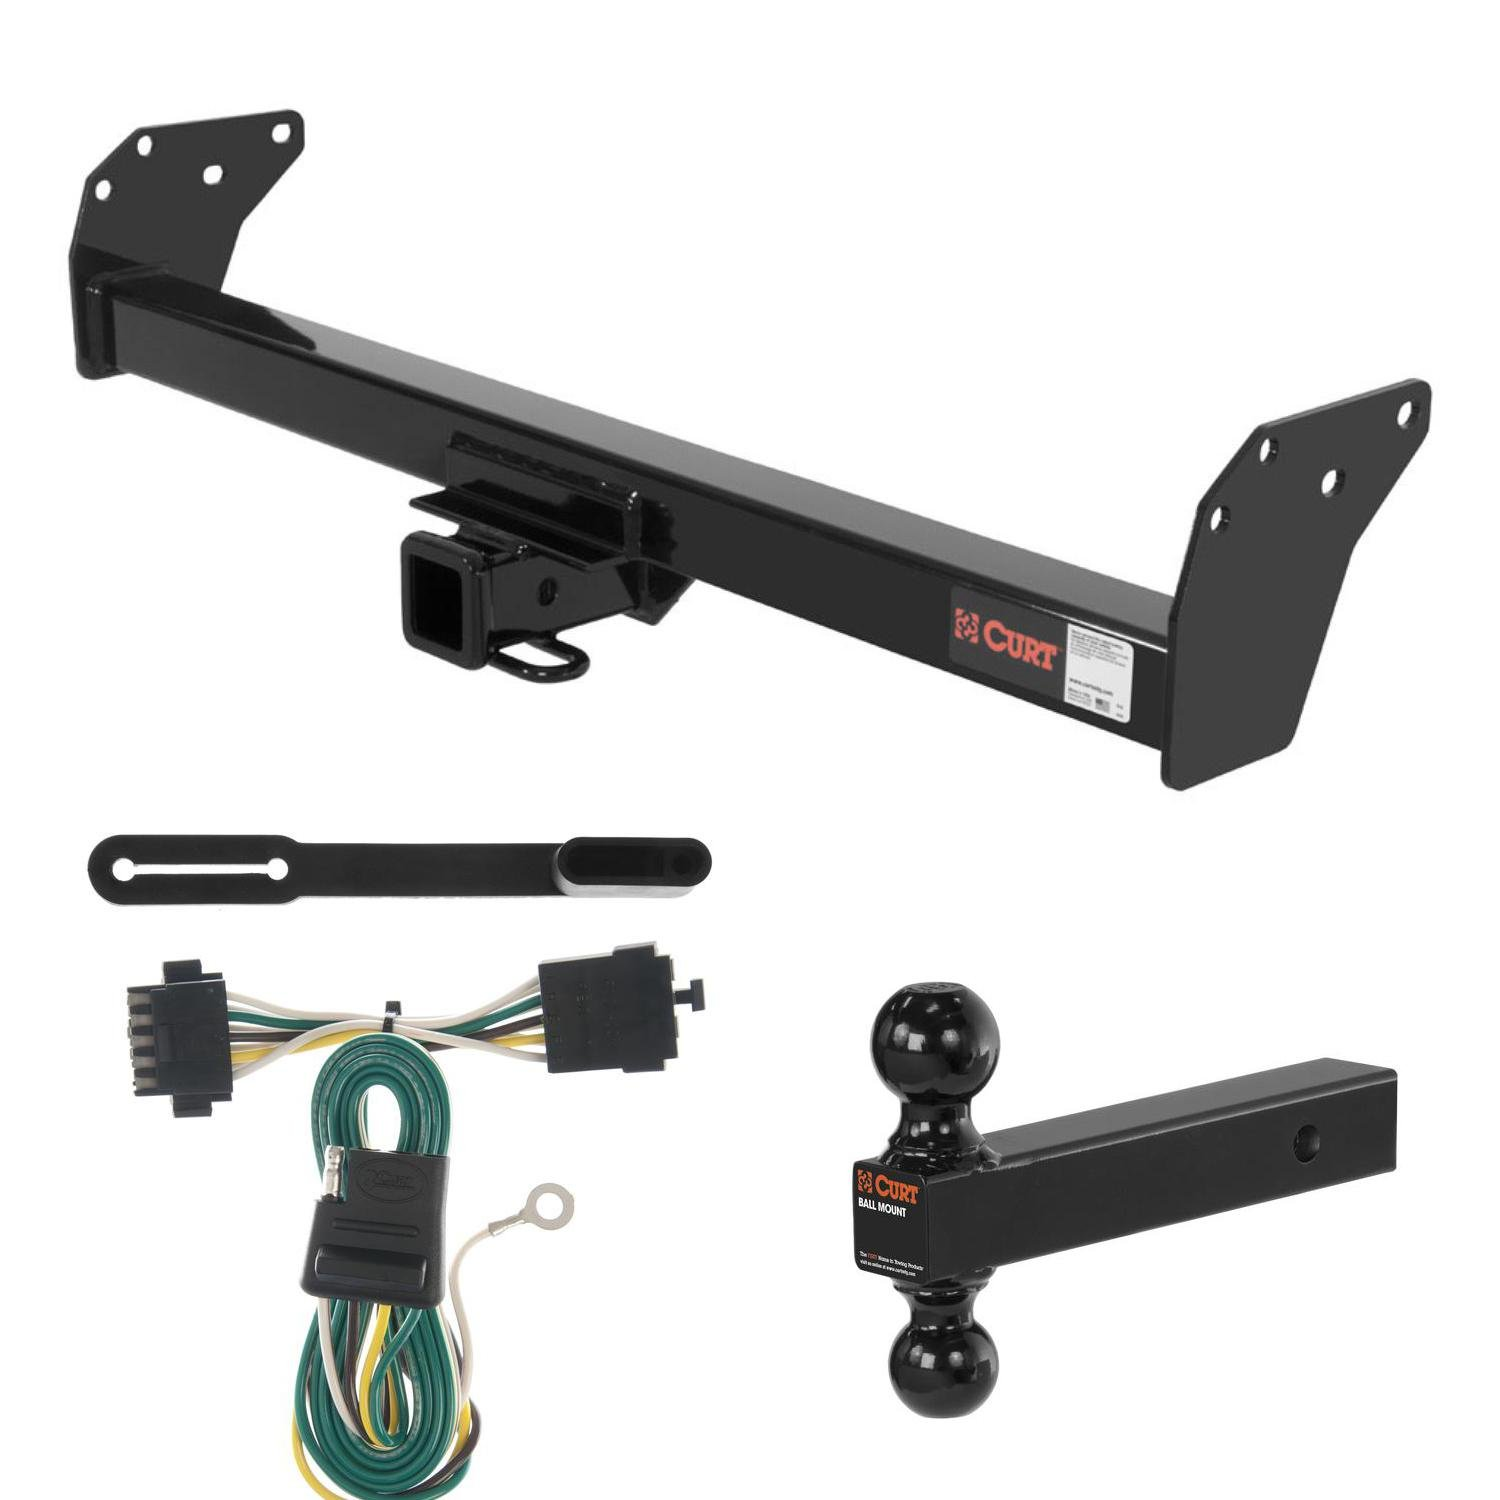 Magnificent Amazon Com Curt Trailer Hitch Wiring Multi Ball Ball Mount For Wiring Digital Resources Instshebarightsorg